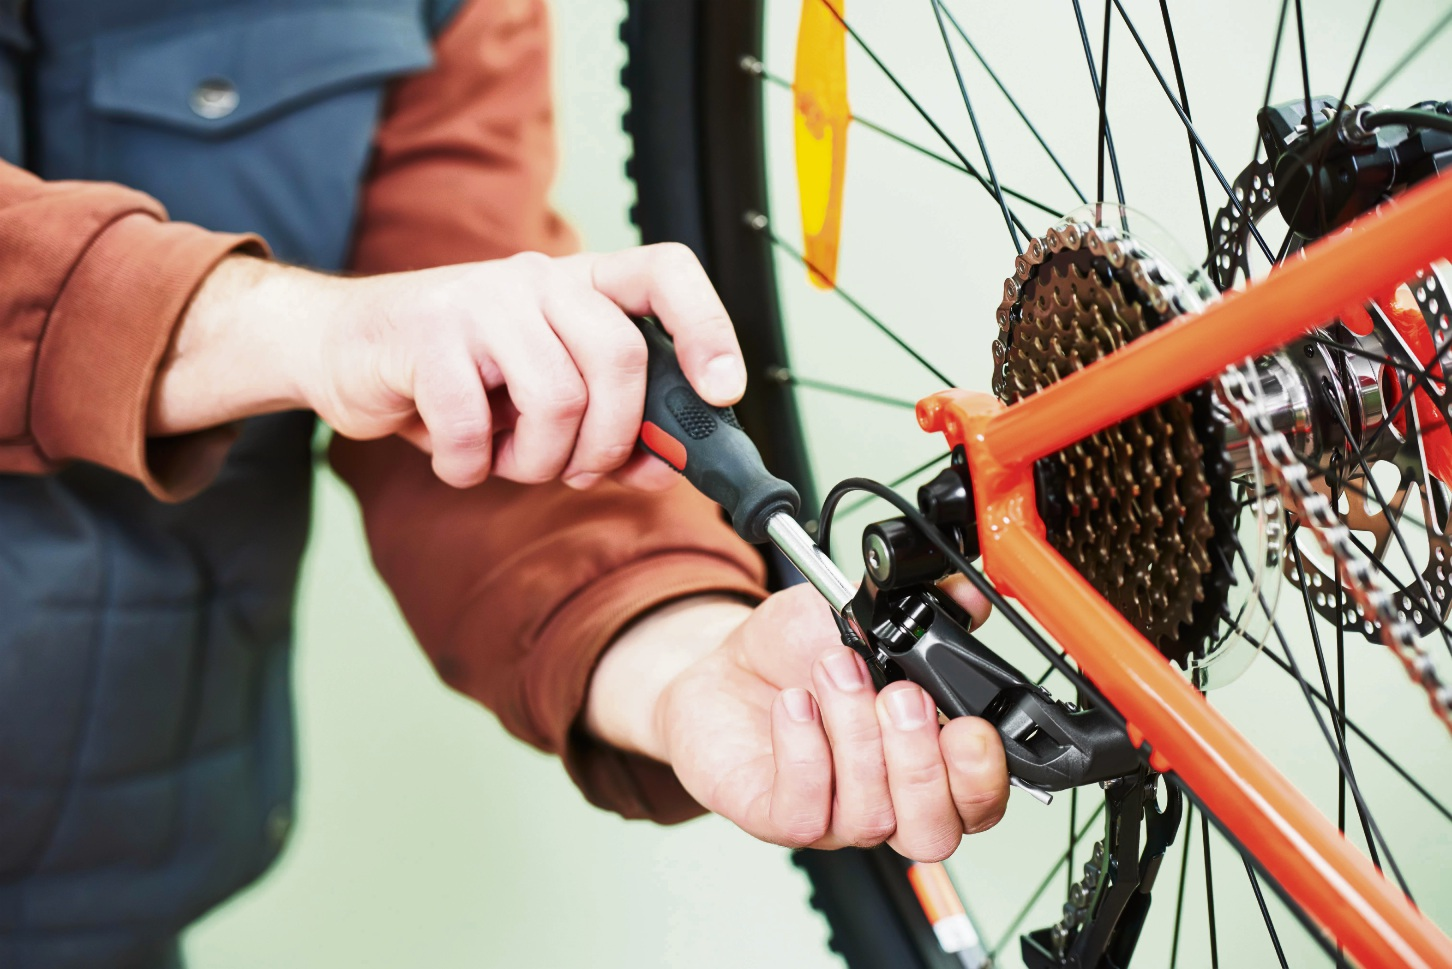 Burns Beach cyclists can saddle up for bike check with the Bike Doctor